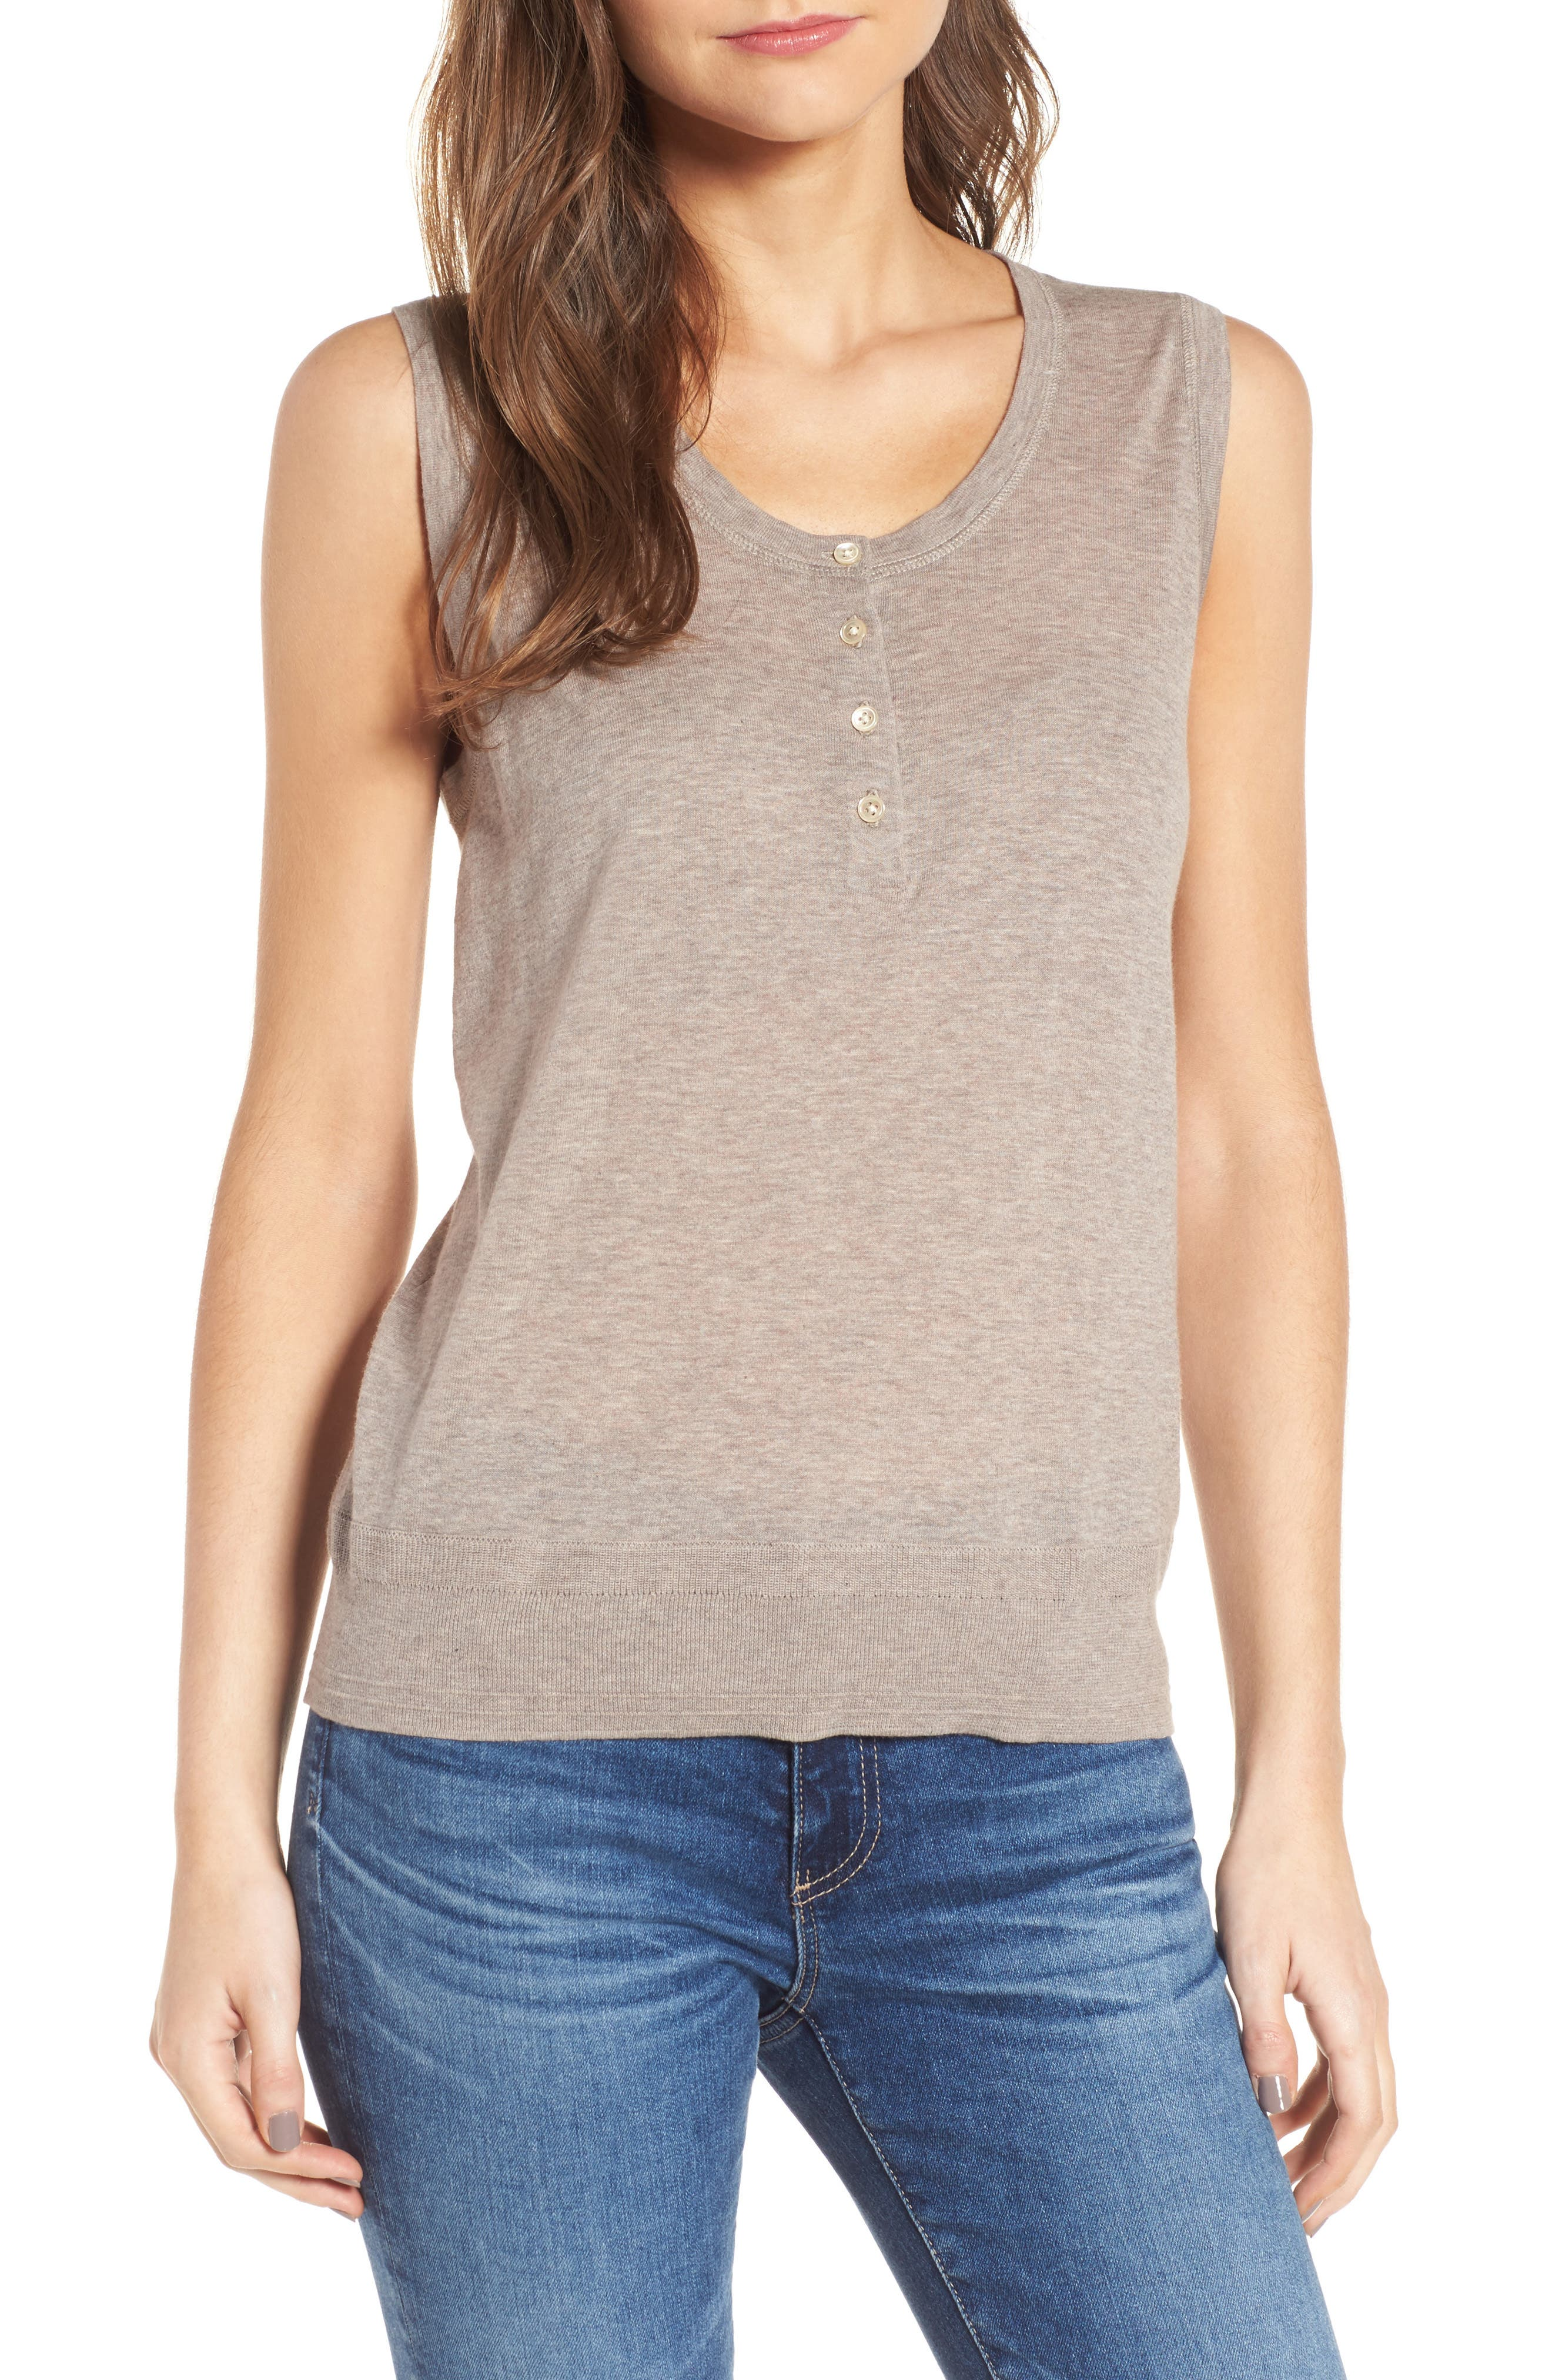 Alternate Image 1 Selected - James Perse Henley Tank Sweater